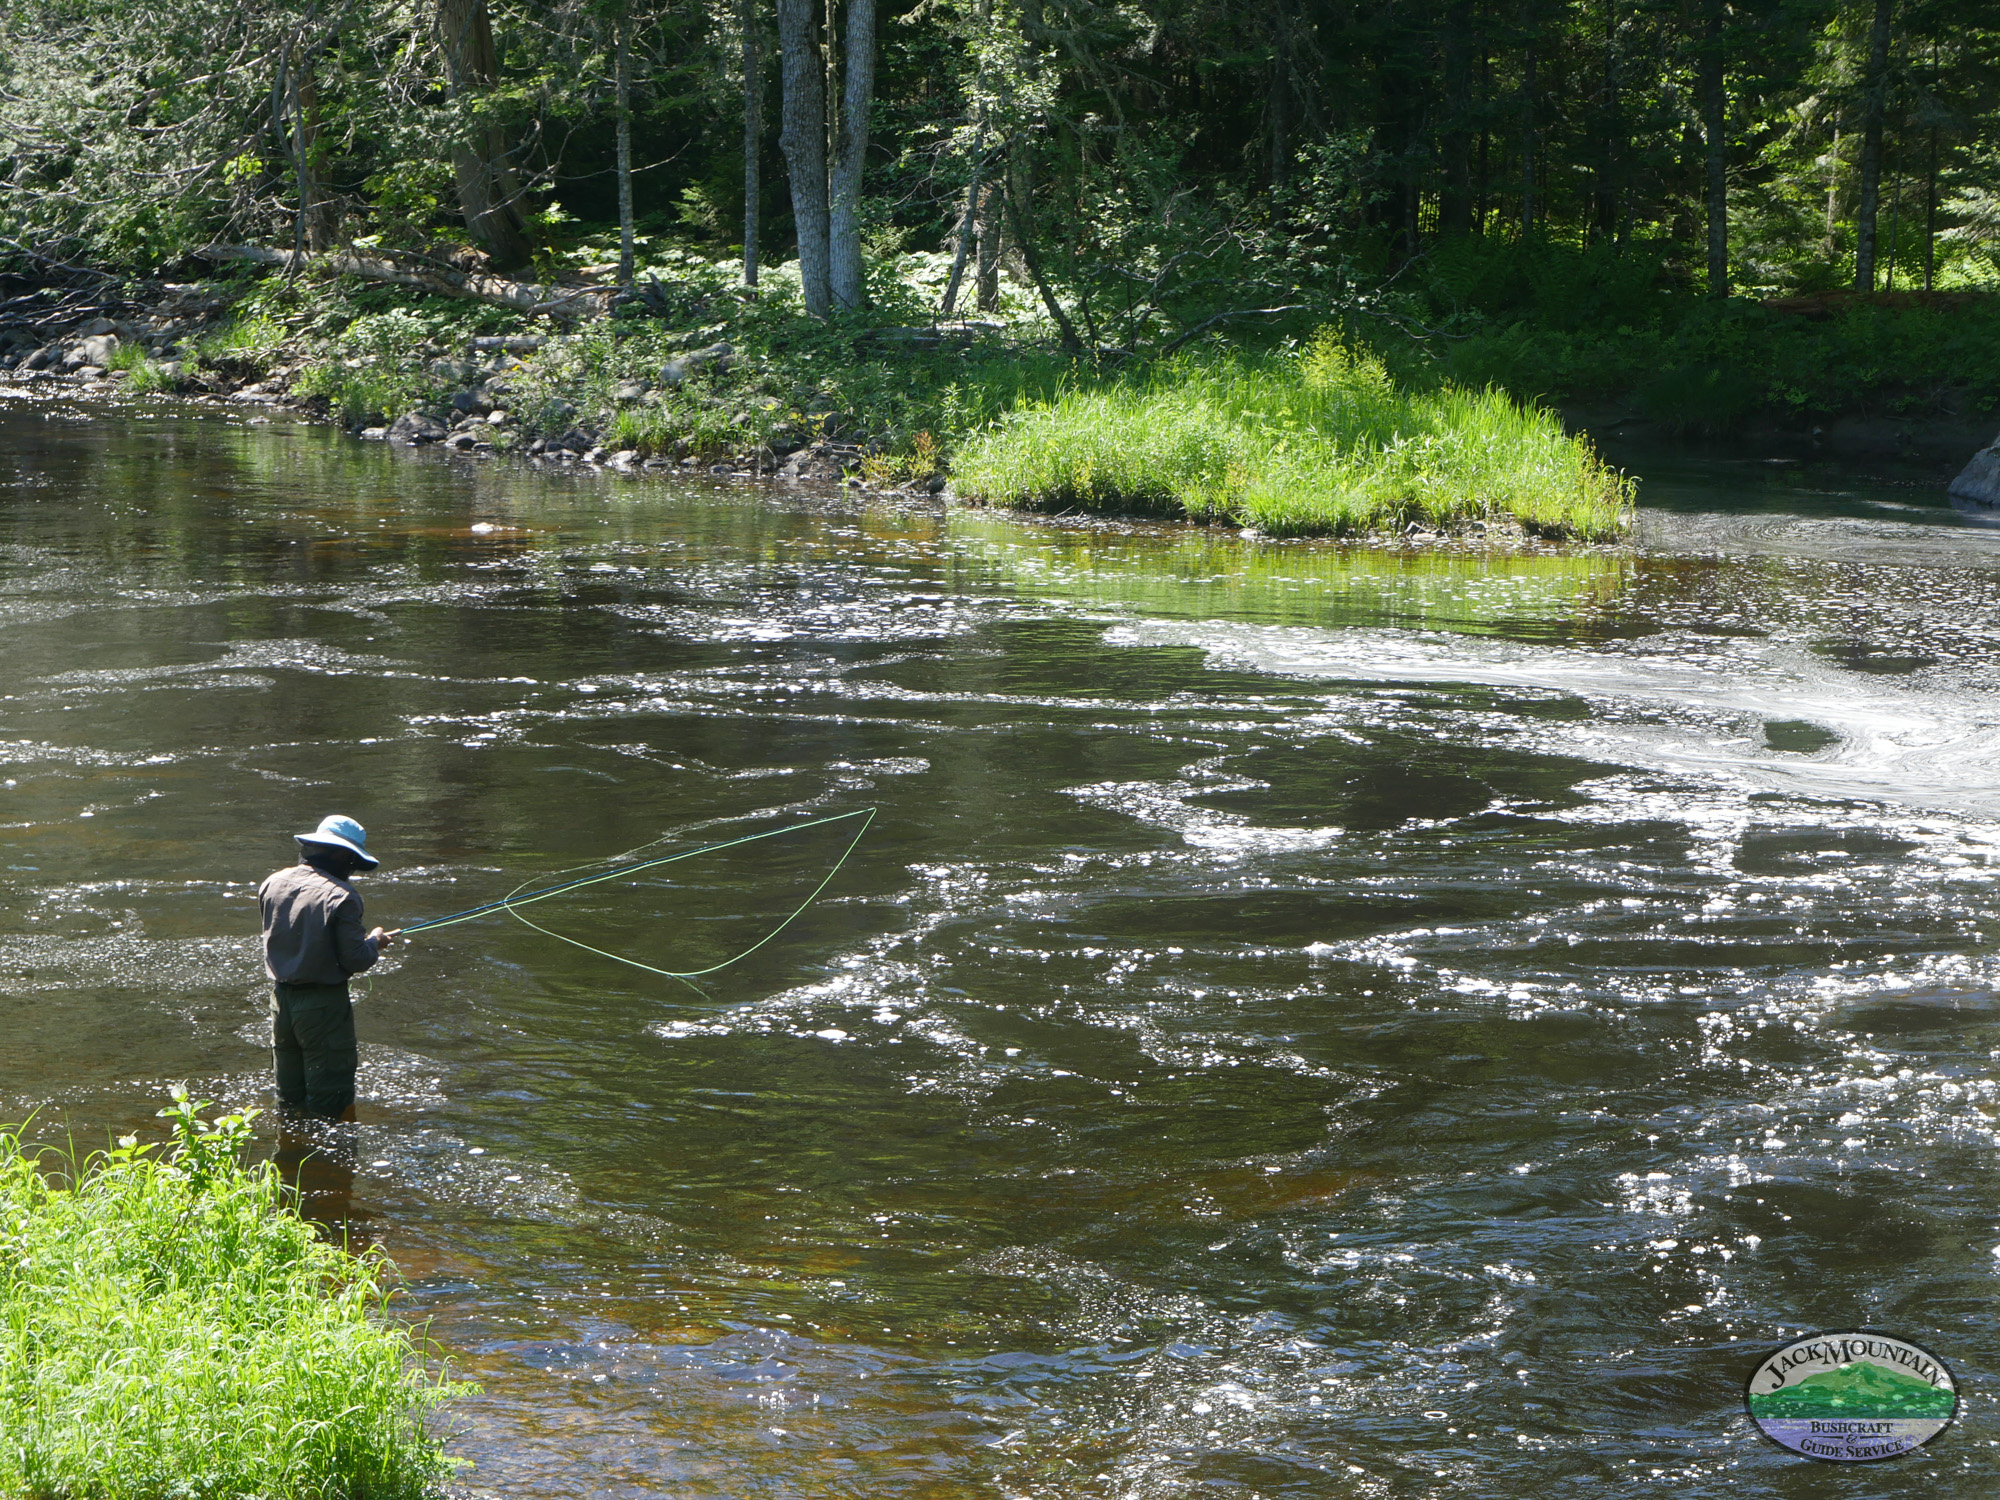 New Program: 3-Day Intro To Fly Fishing Course In May